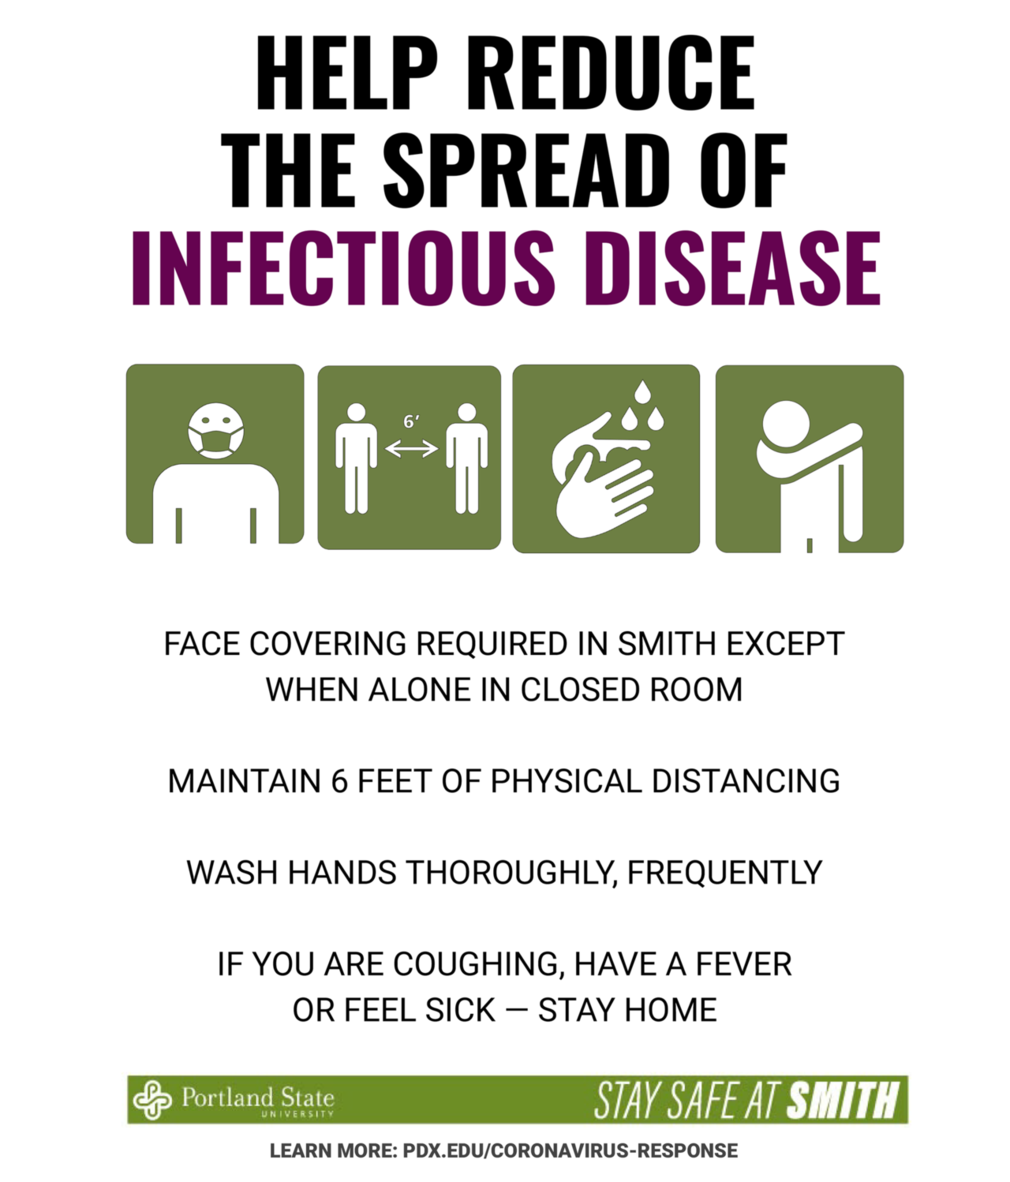 Sample of public health signage coming to Smith.